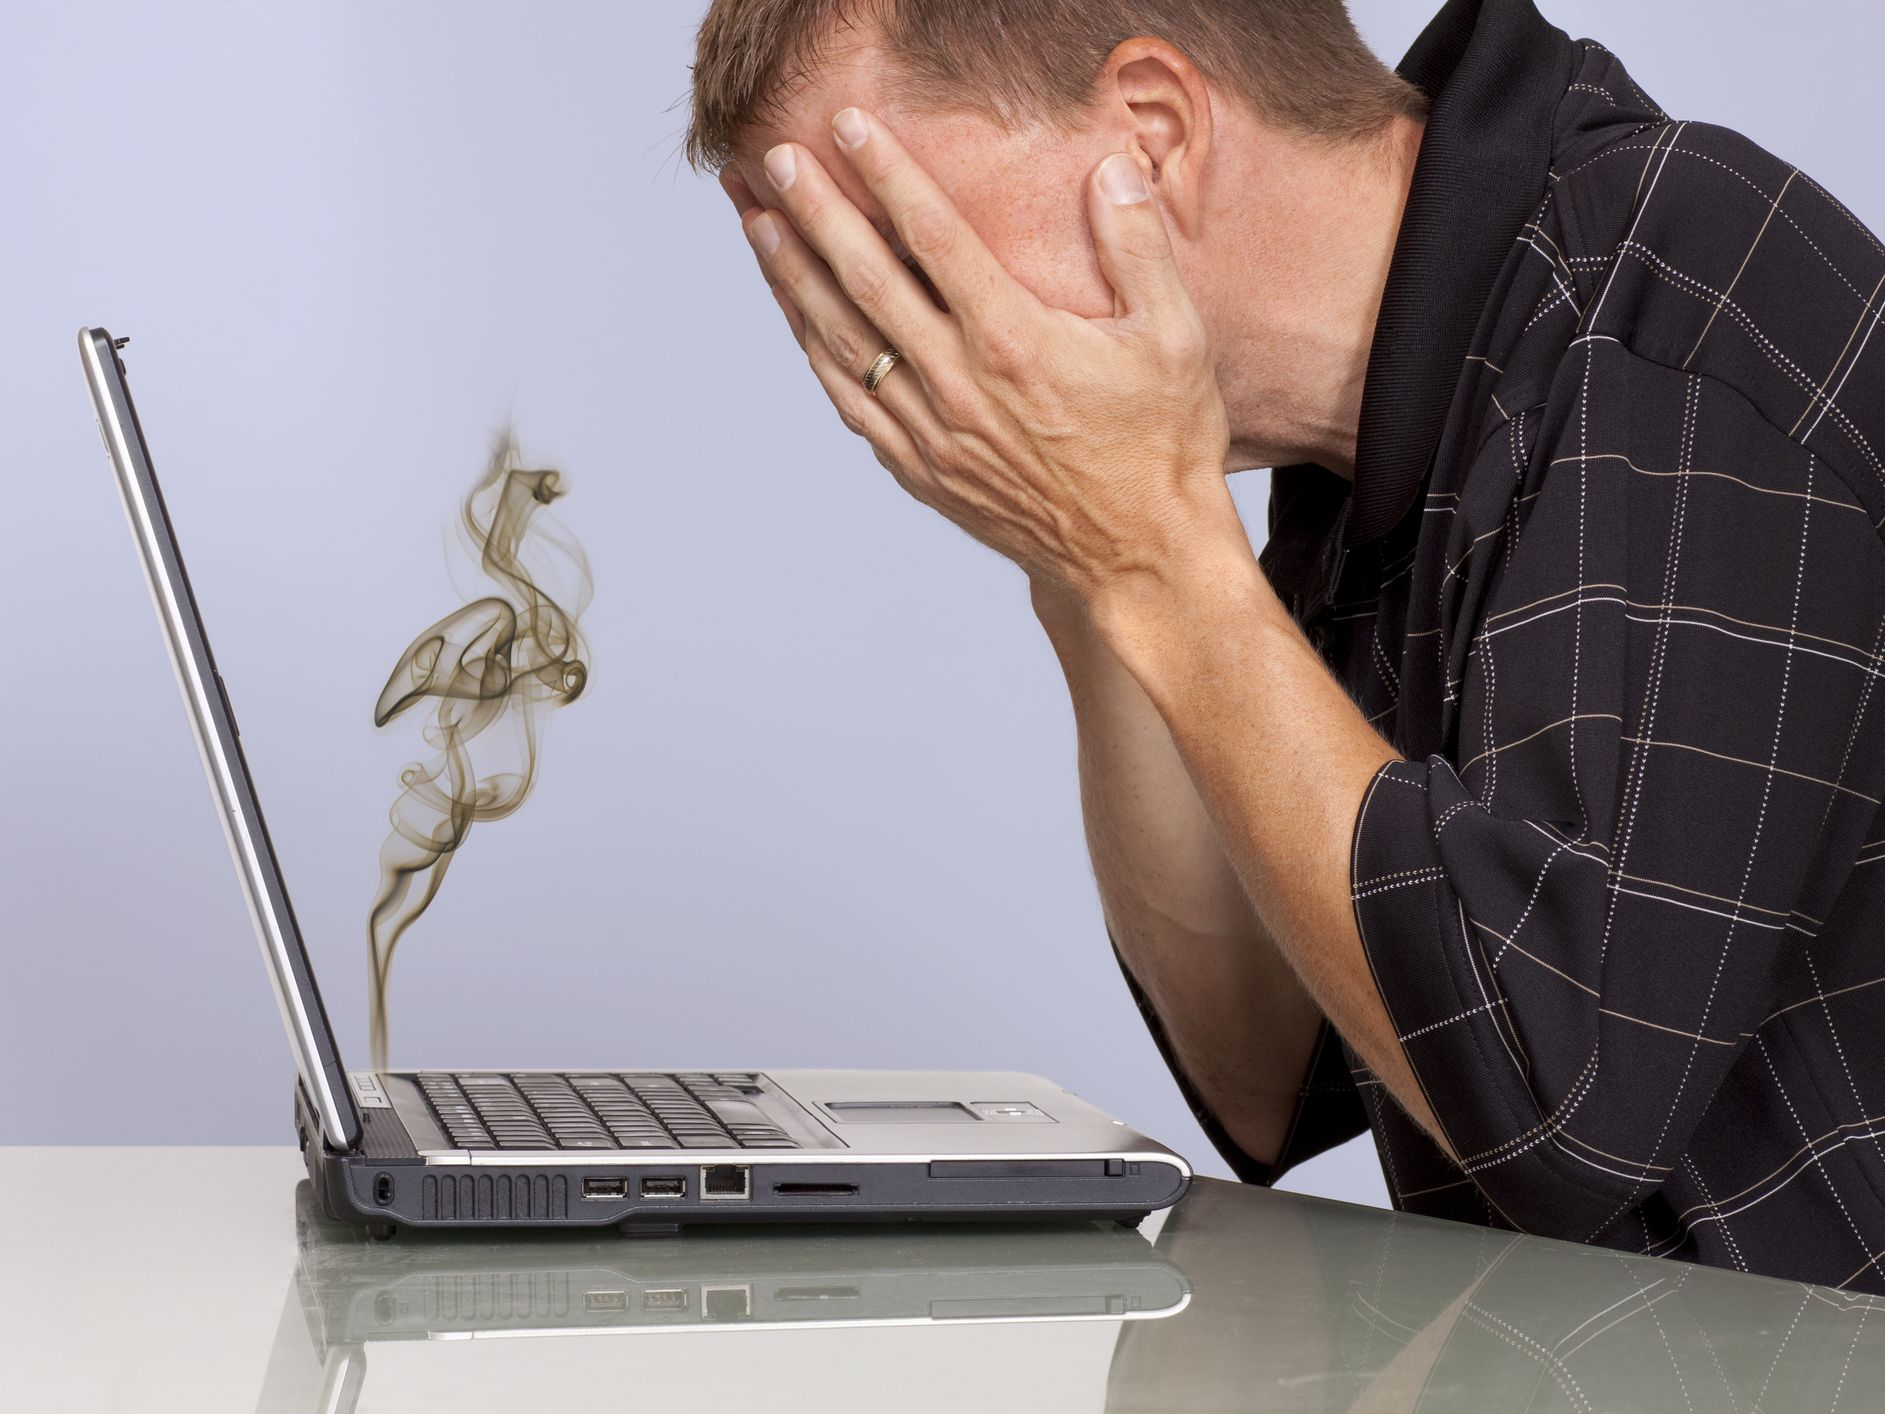 Signs and Dangers of Laptops Overheating